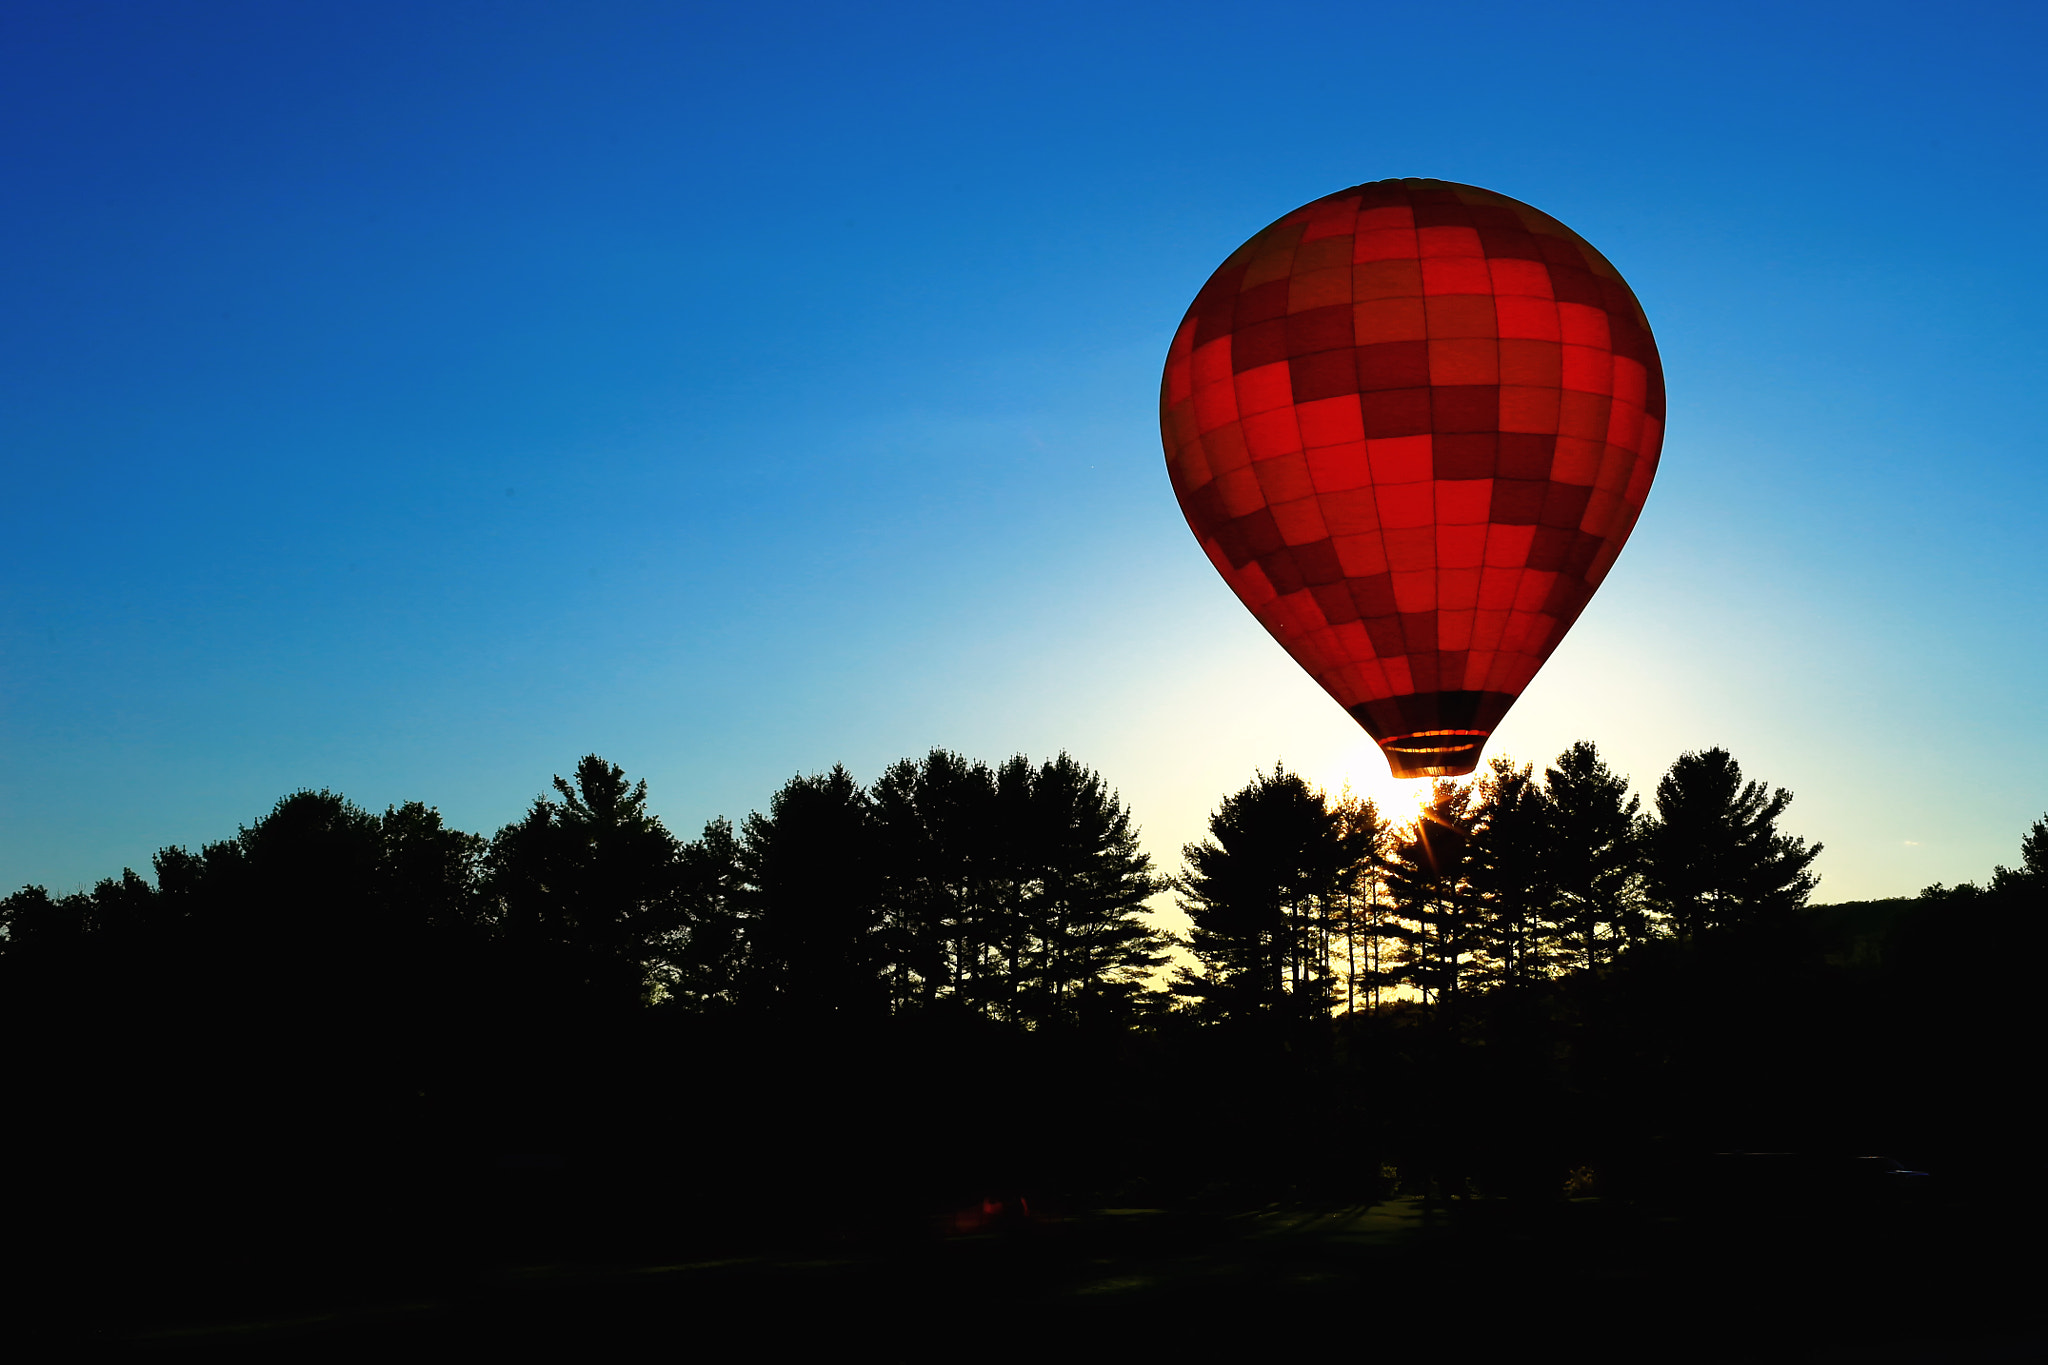 Photograph Inflated Sense of Adventure  by Matt H on 500px